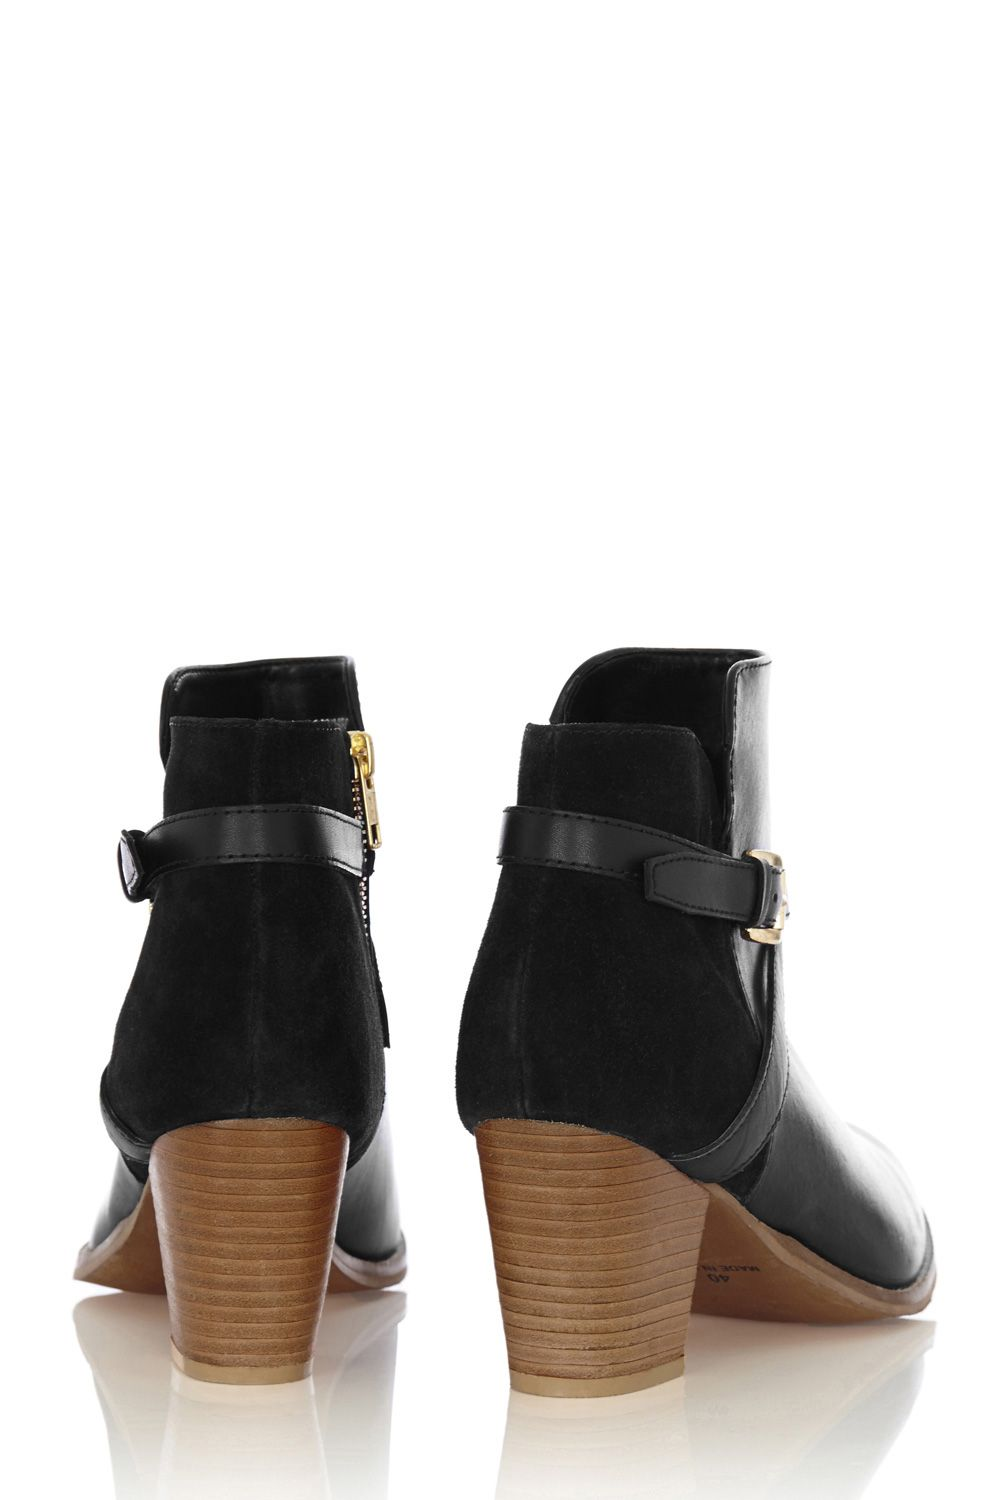 Frankie stacked heeled boots